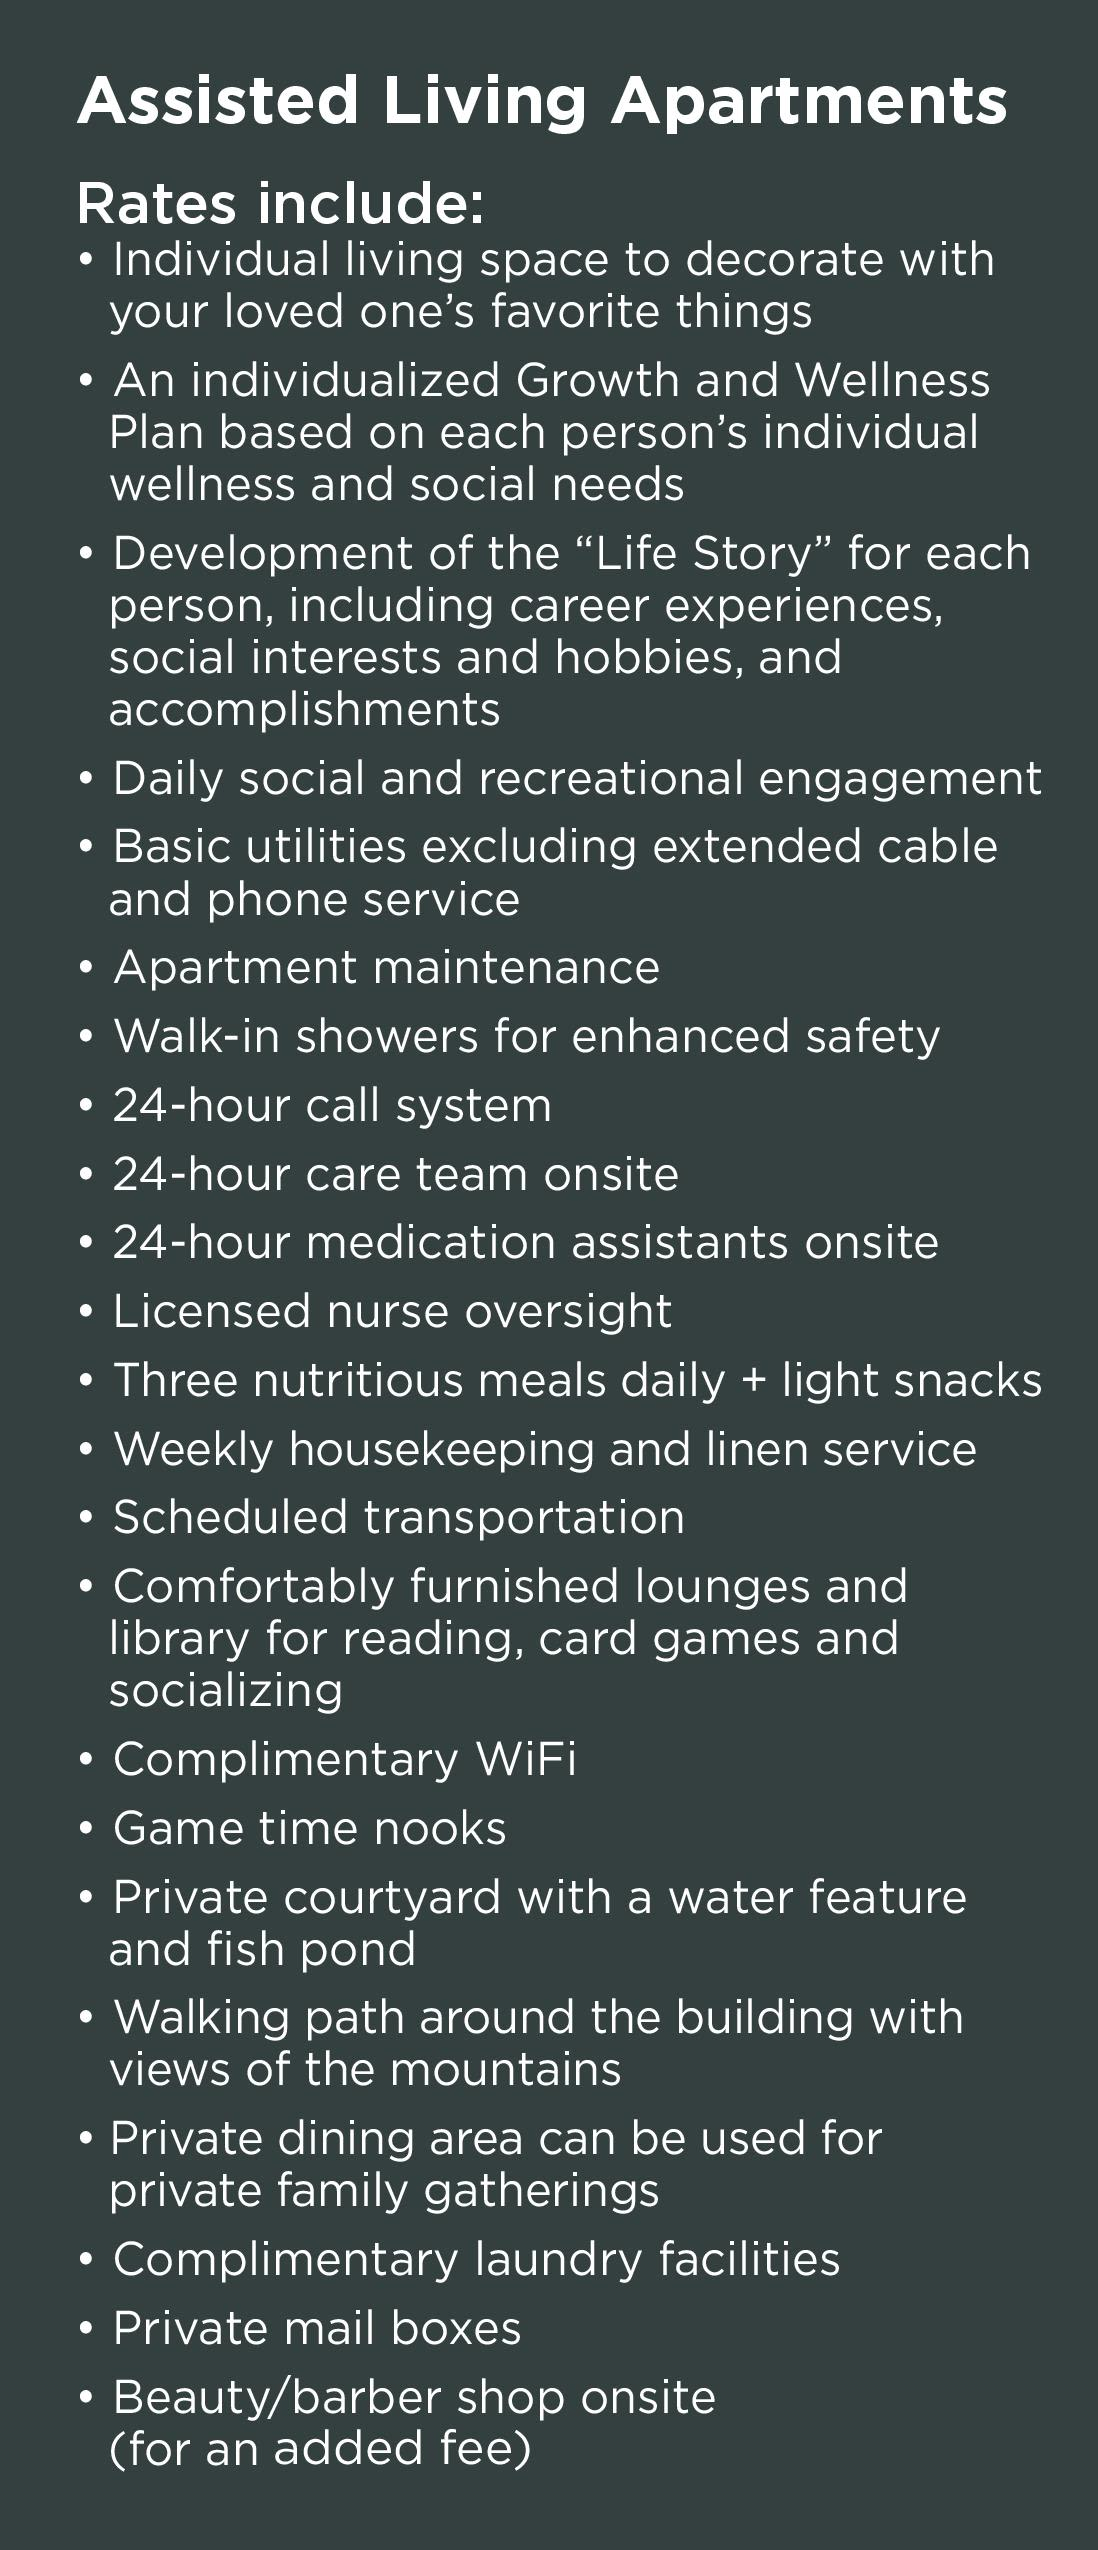 Whats included in assisted living rates at Wildwood Canyon Villa Assisted Living and Memory Care in Yucaipa, California